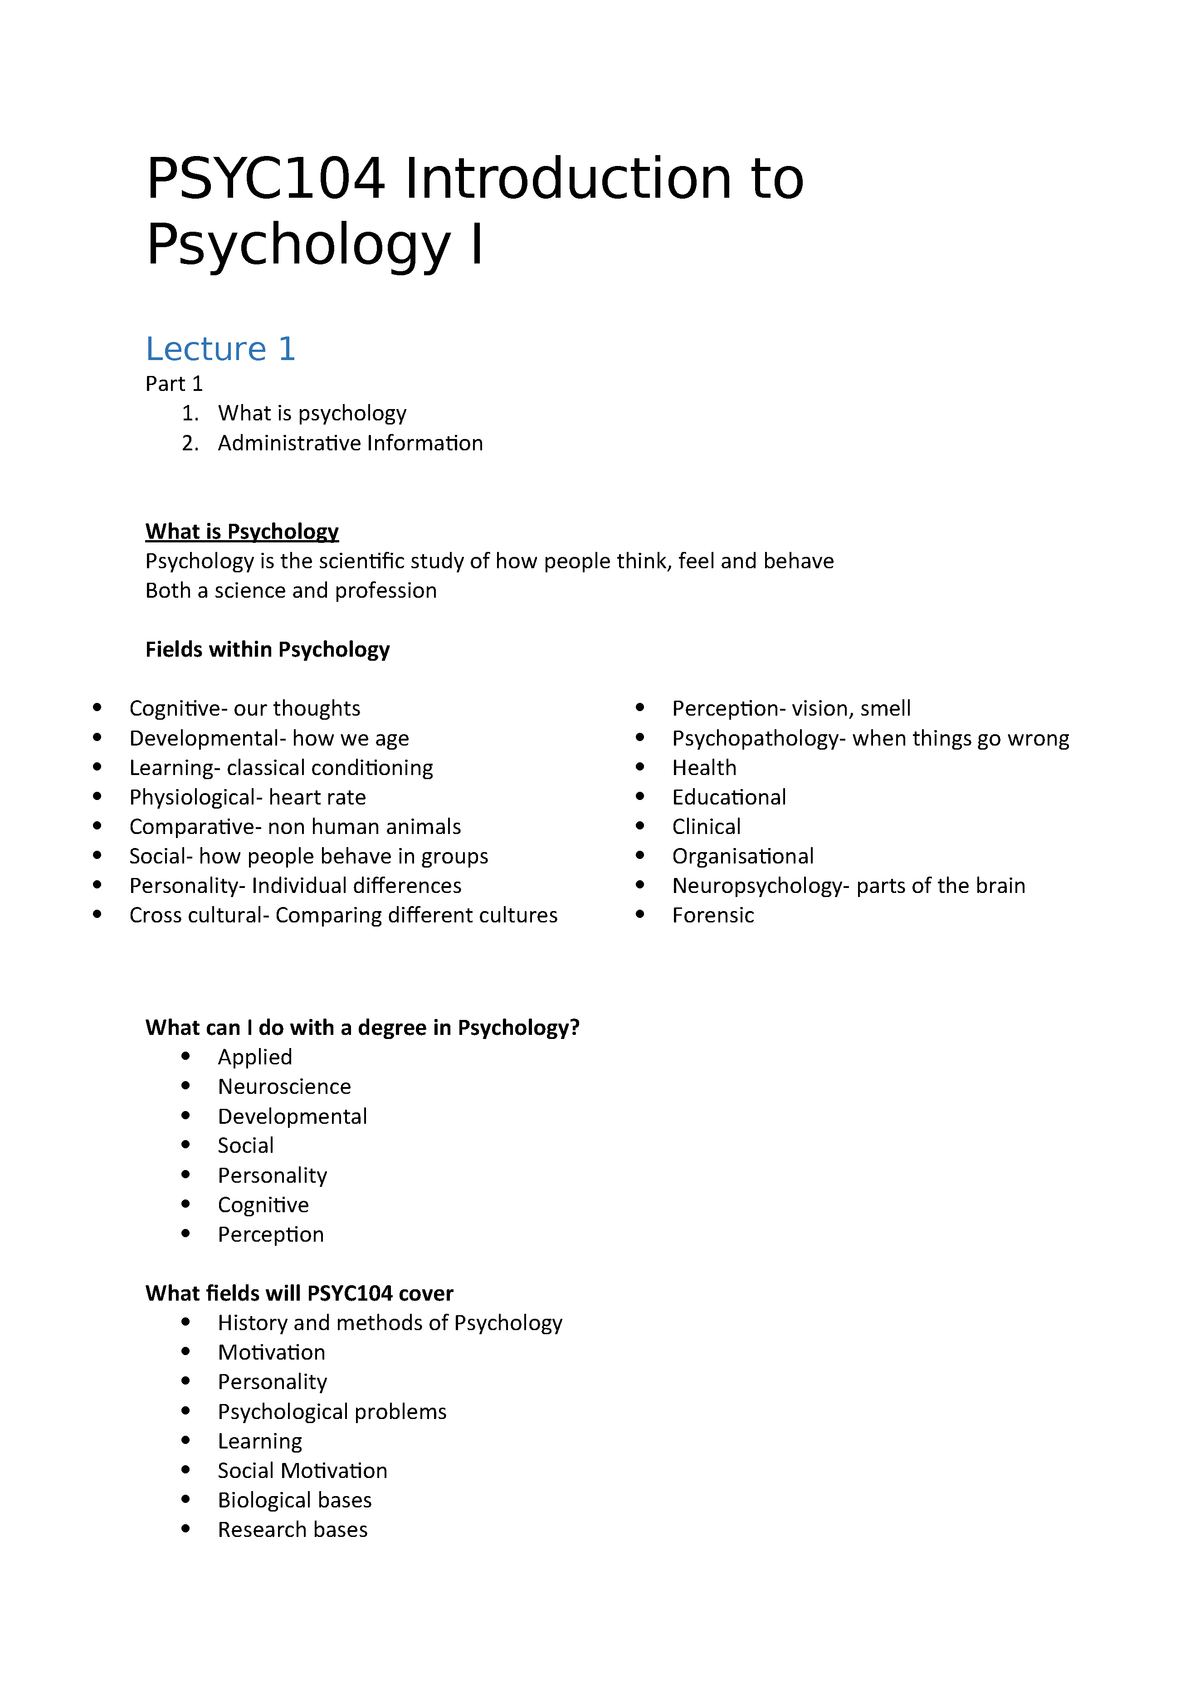 PSYC104 lecture notes - PSYC104: Introduction to Psychology